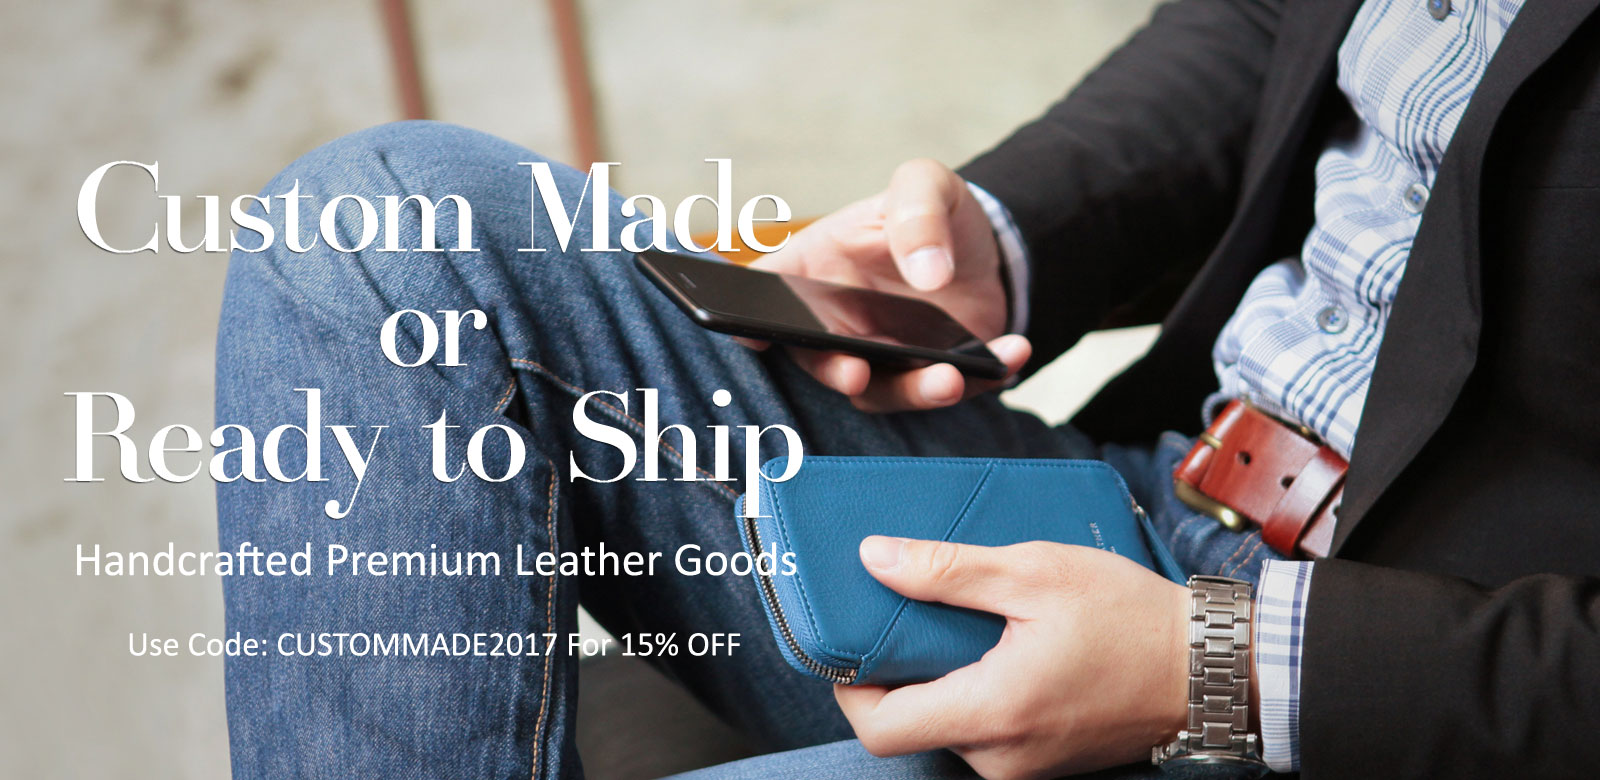 Custom Made or Read-to-Ship - Save 15% Sitewide